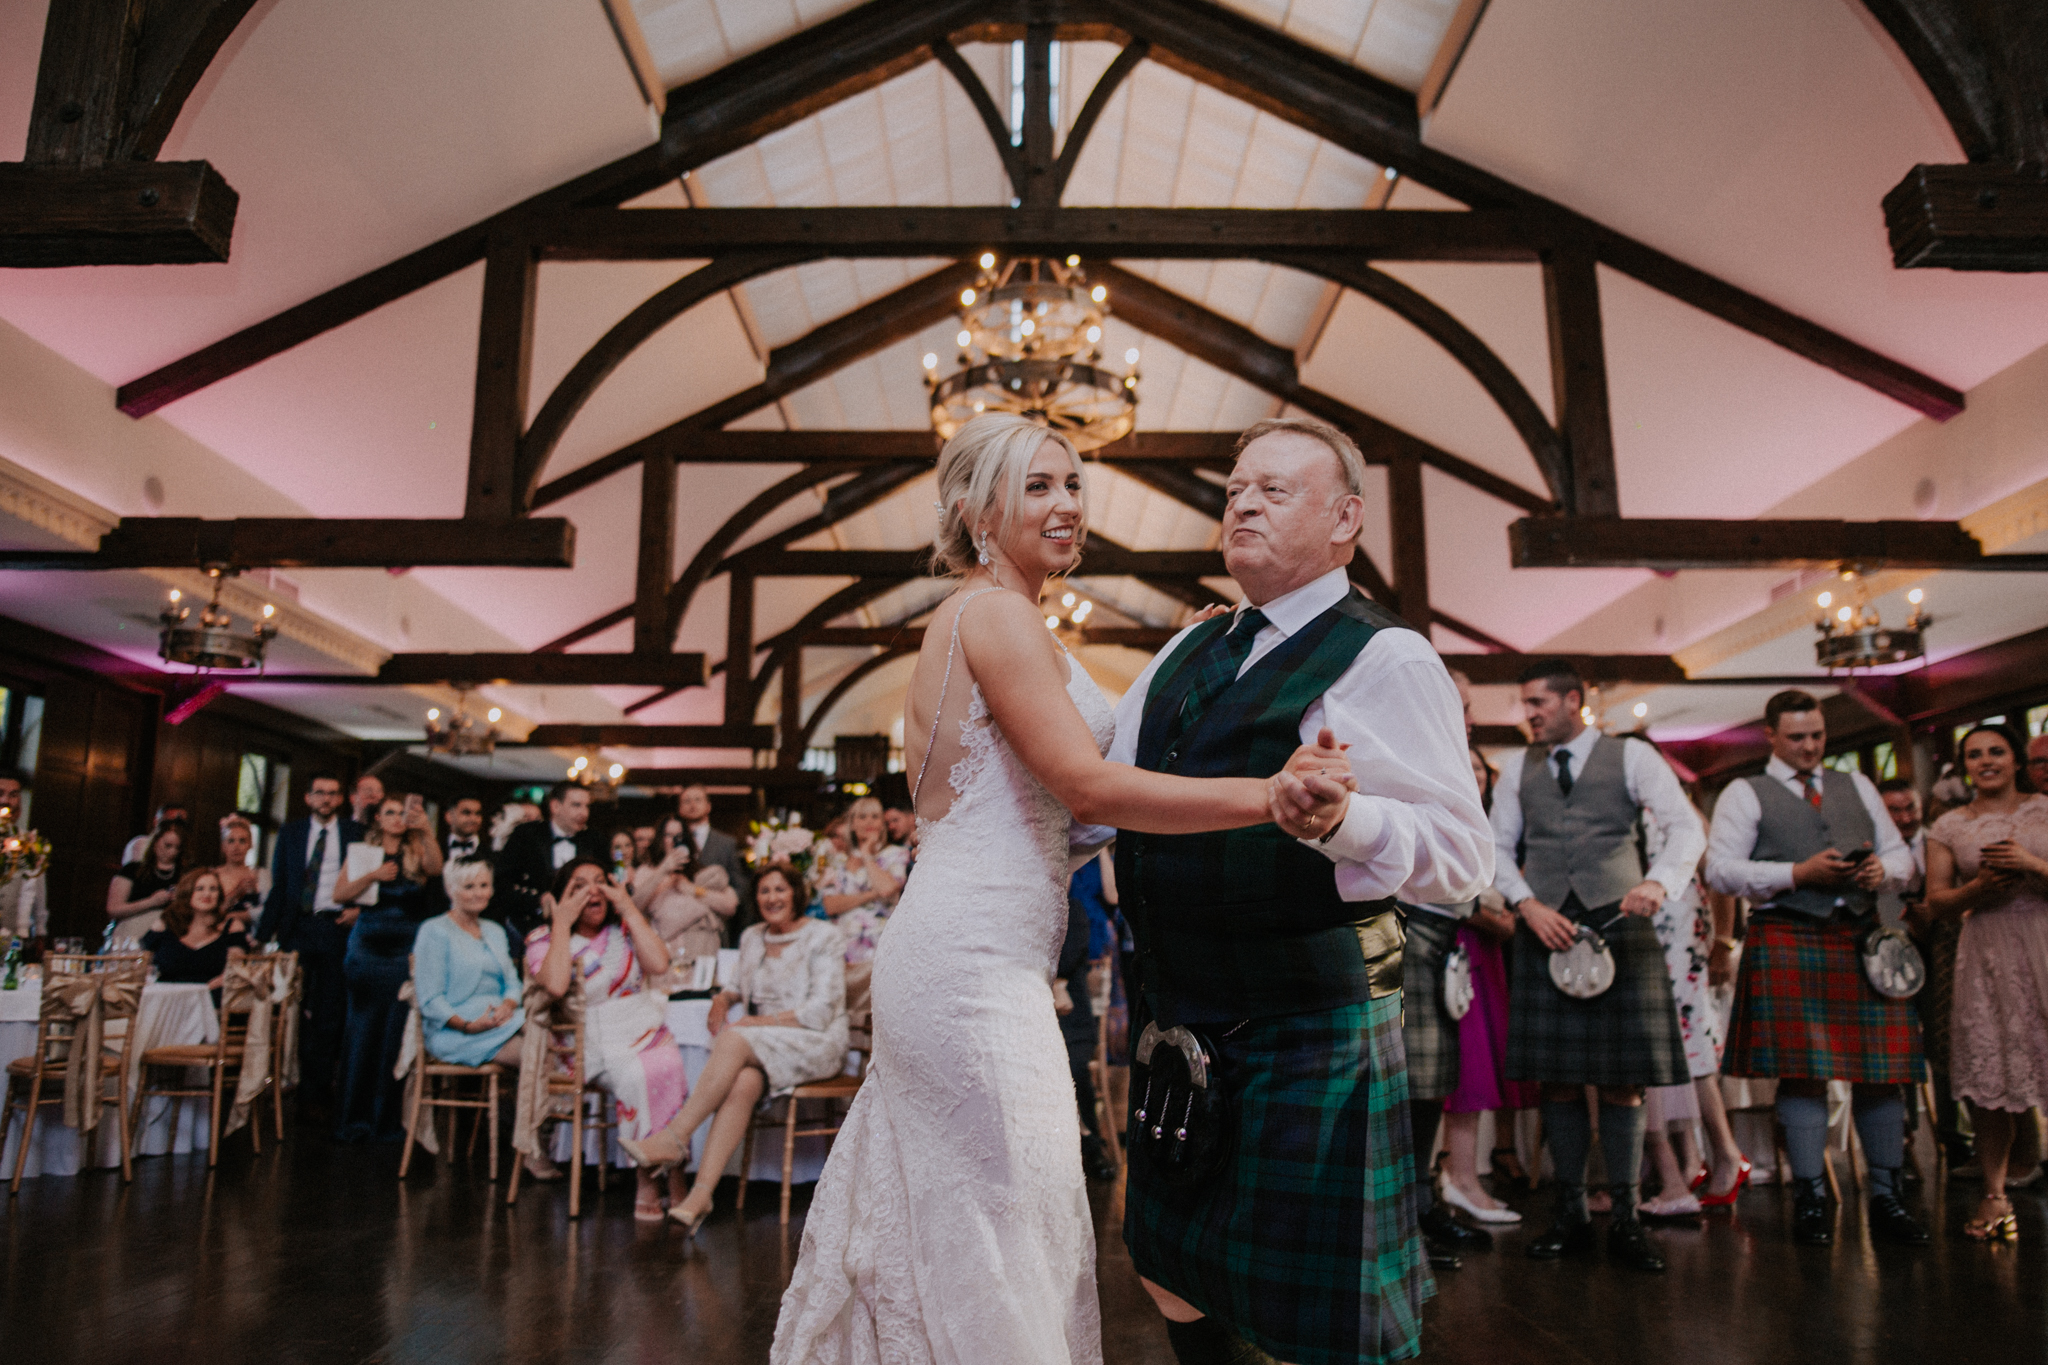 The bride is dancing with her dad